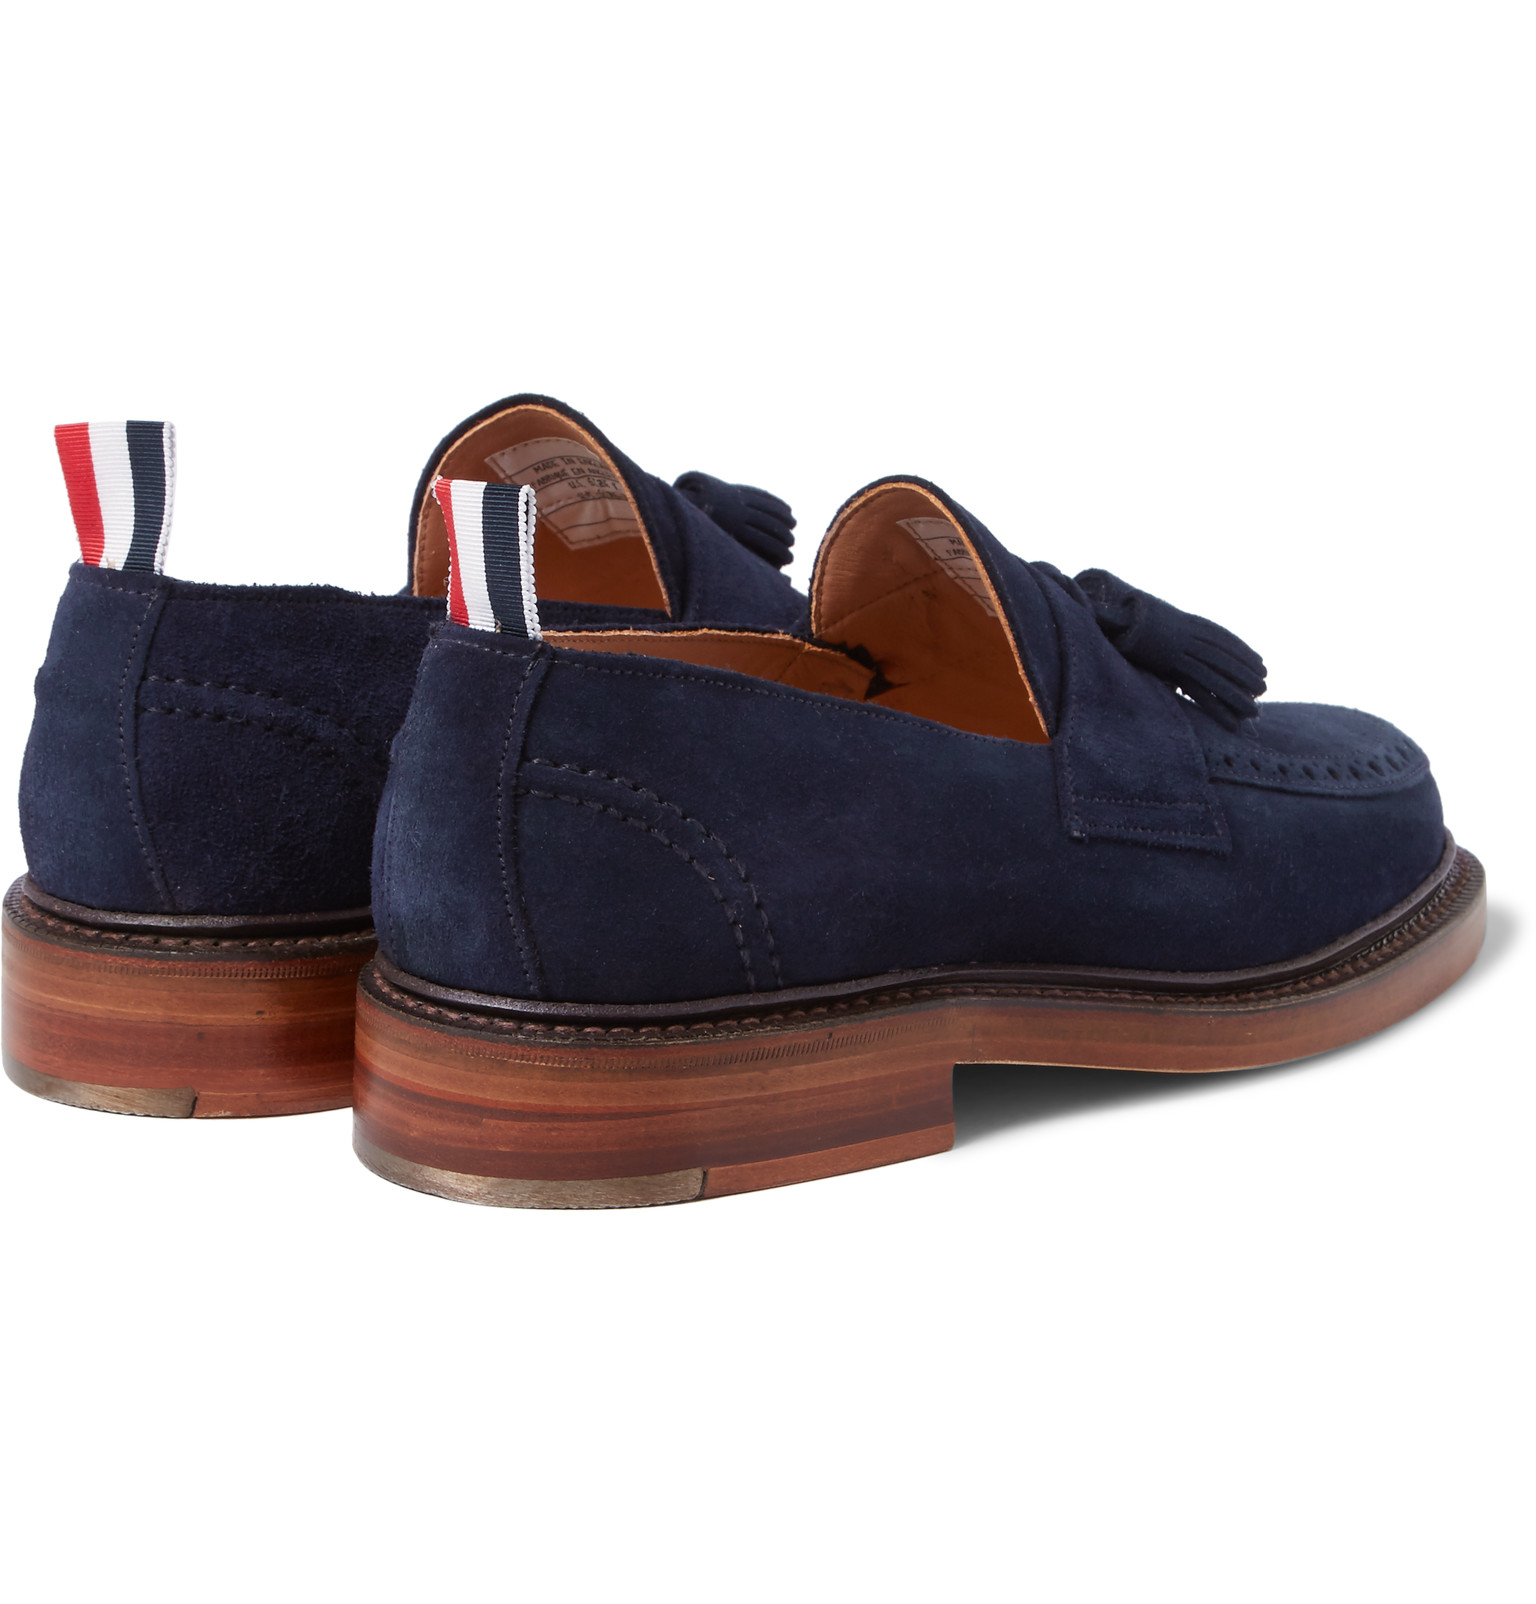 8c4451f9d94 Thom Browne Suede Tasselled Loafers in Blue for Men - Lyst